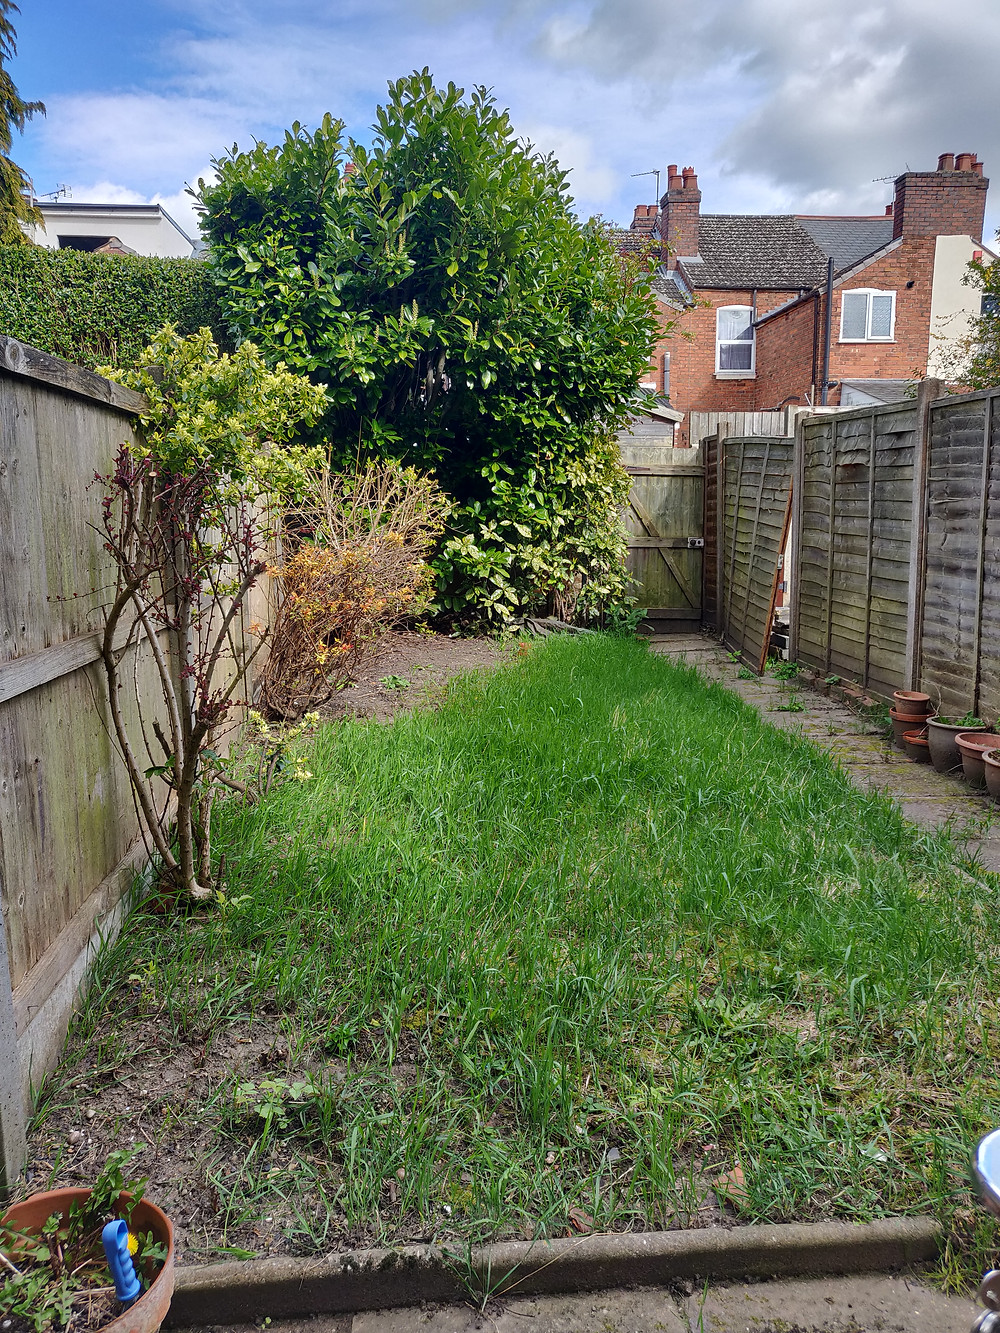 A small patch of lawn with  a fence on one side, 2 shrubs on the other and a large overgrown laurel hedge at the back